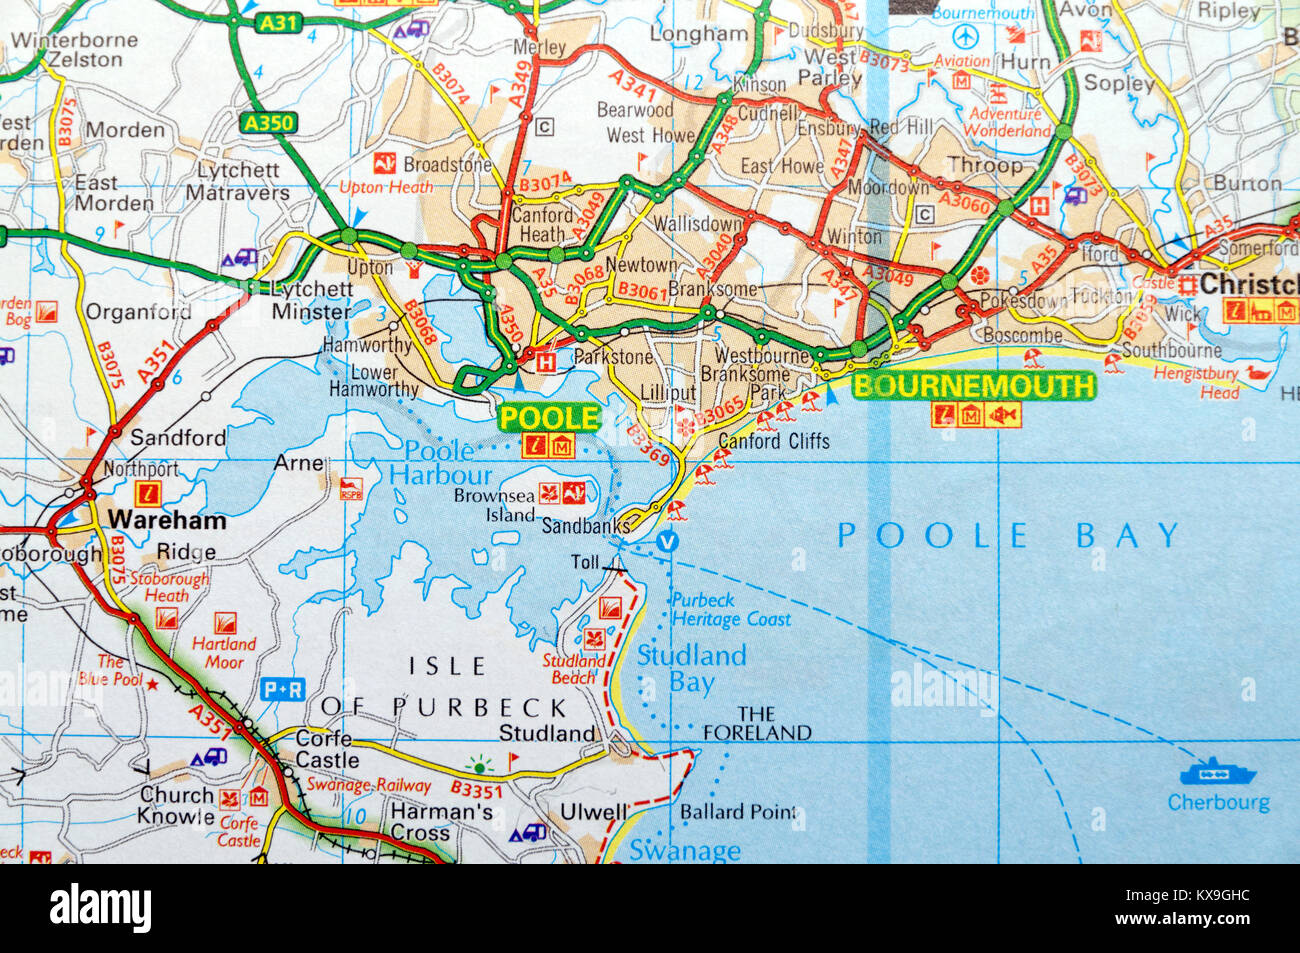 Map Of Poole Road Map of Poole Harbour and Bournemouth, England Stock Photo